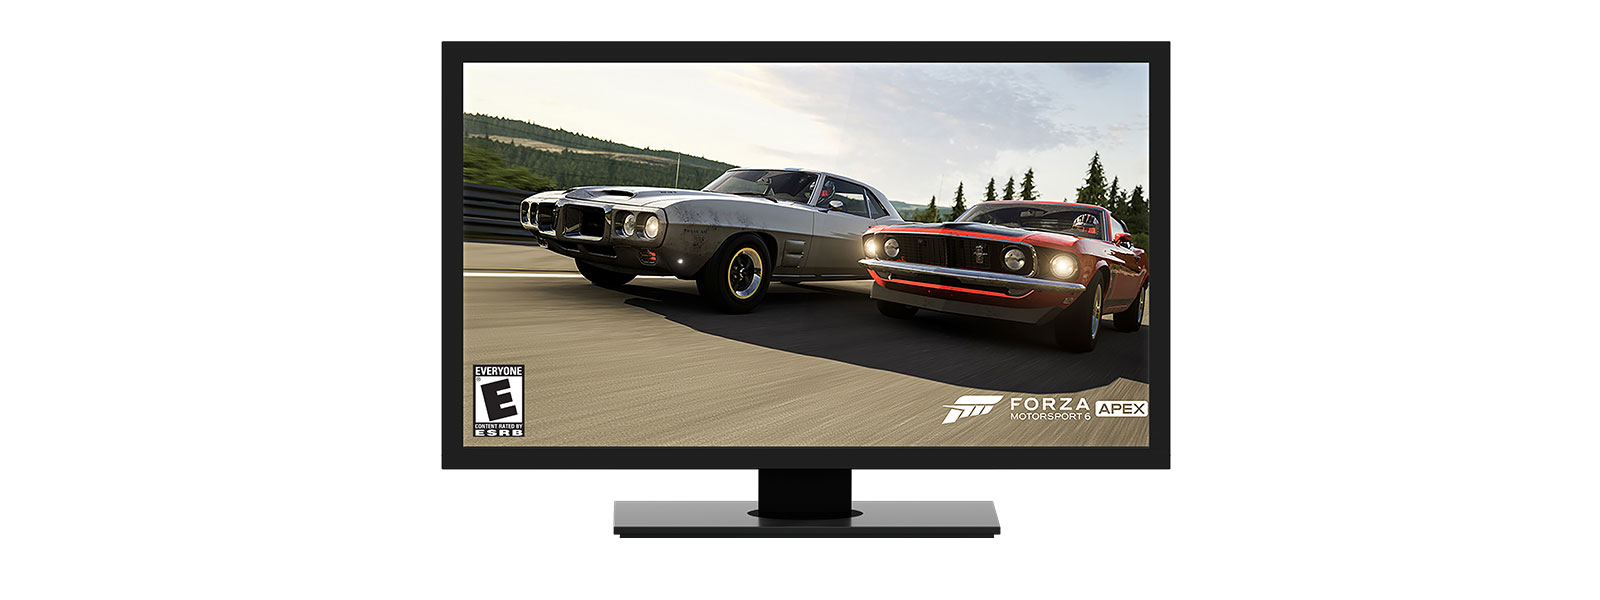 Forza game on Windows desktop